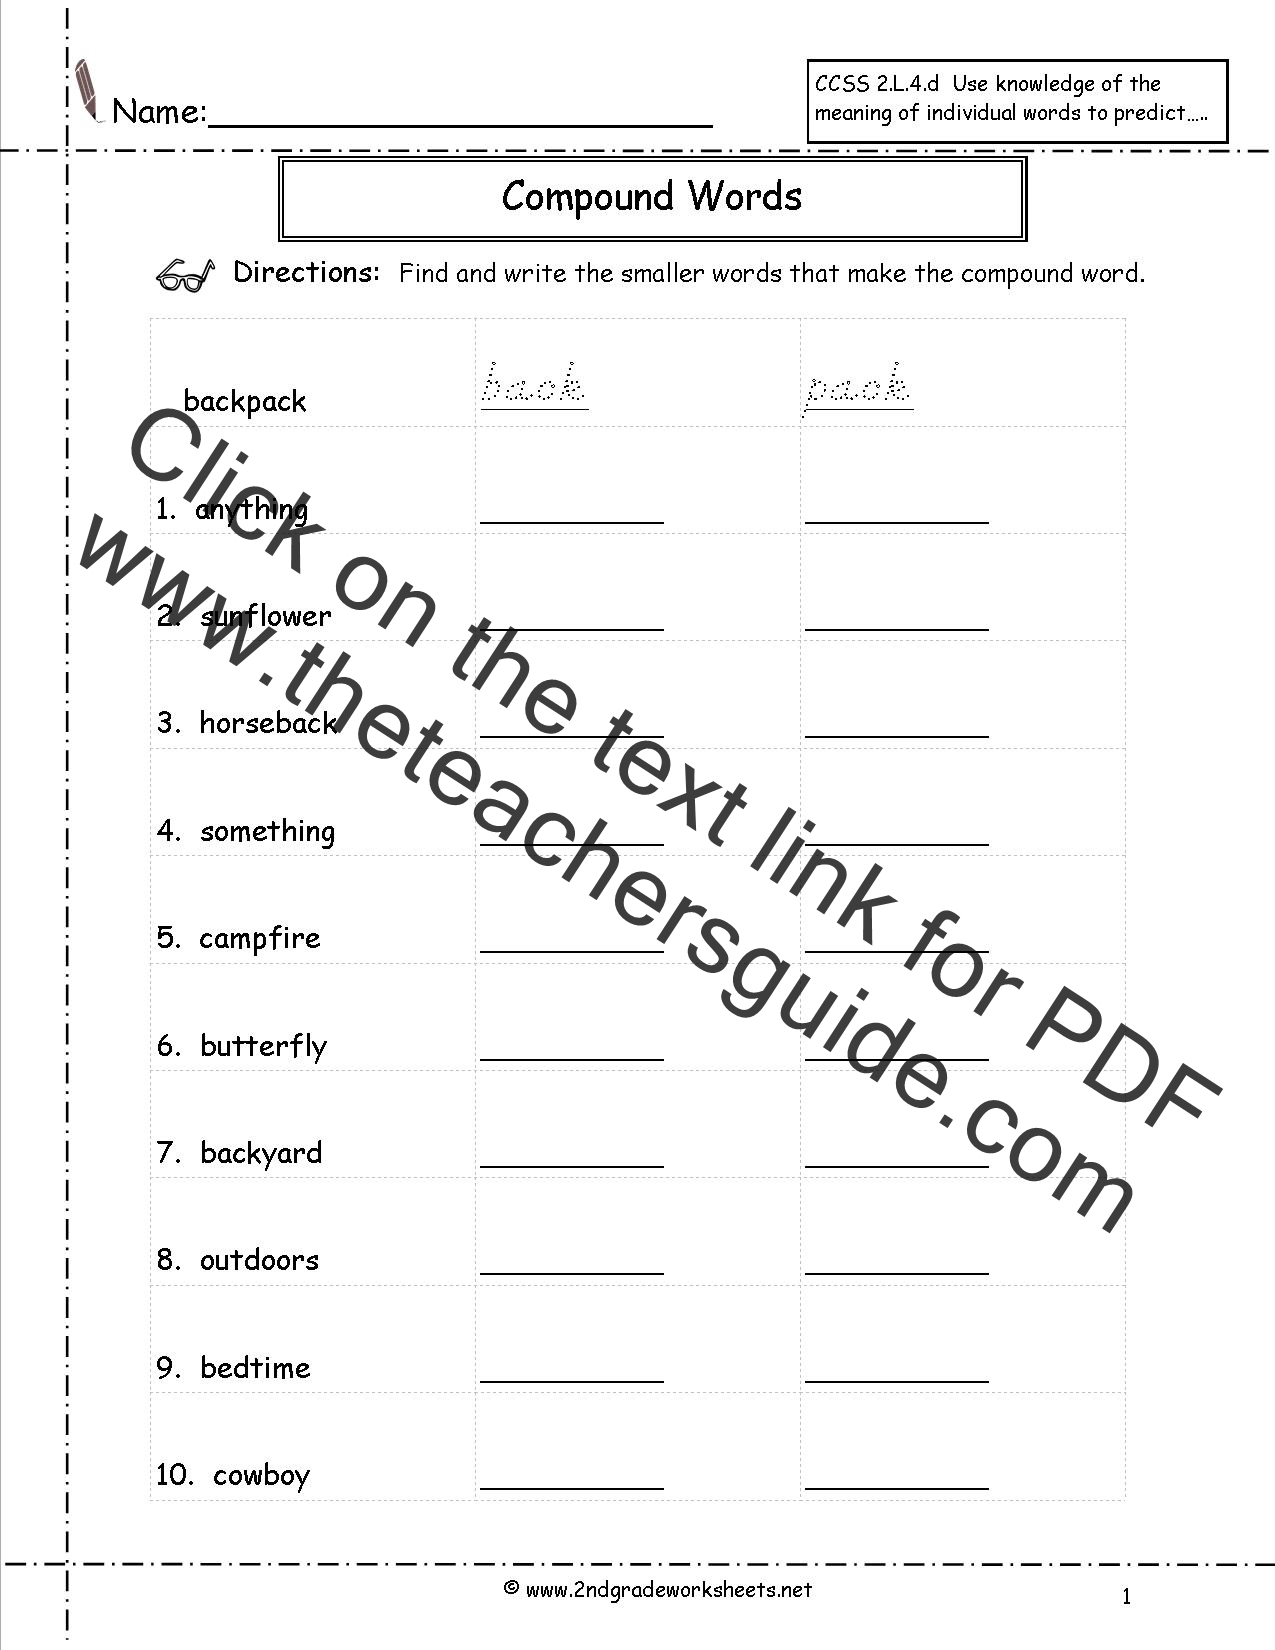 Worksheets Printable Worksheets For 2nd Graders free languagegrammar worksheets and printouts compound words worksheets